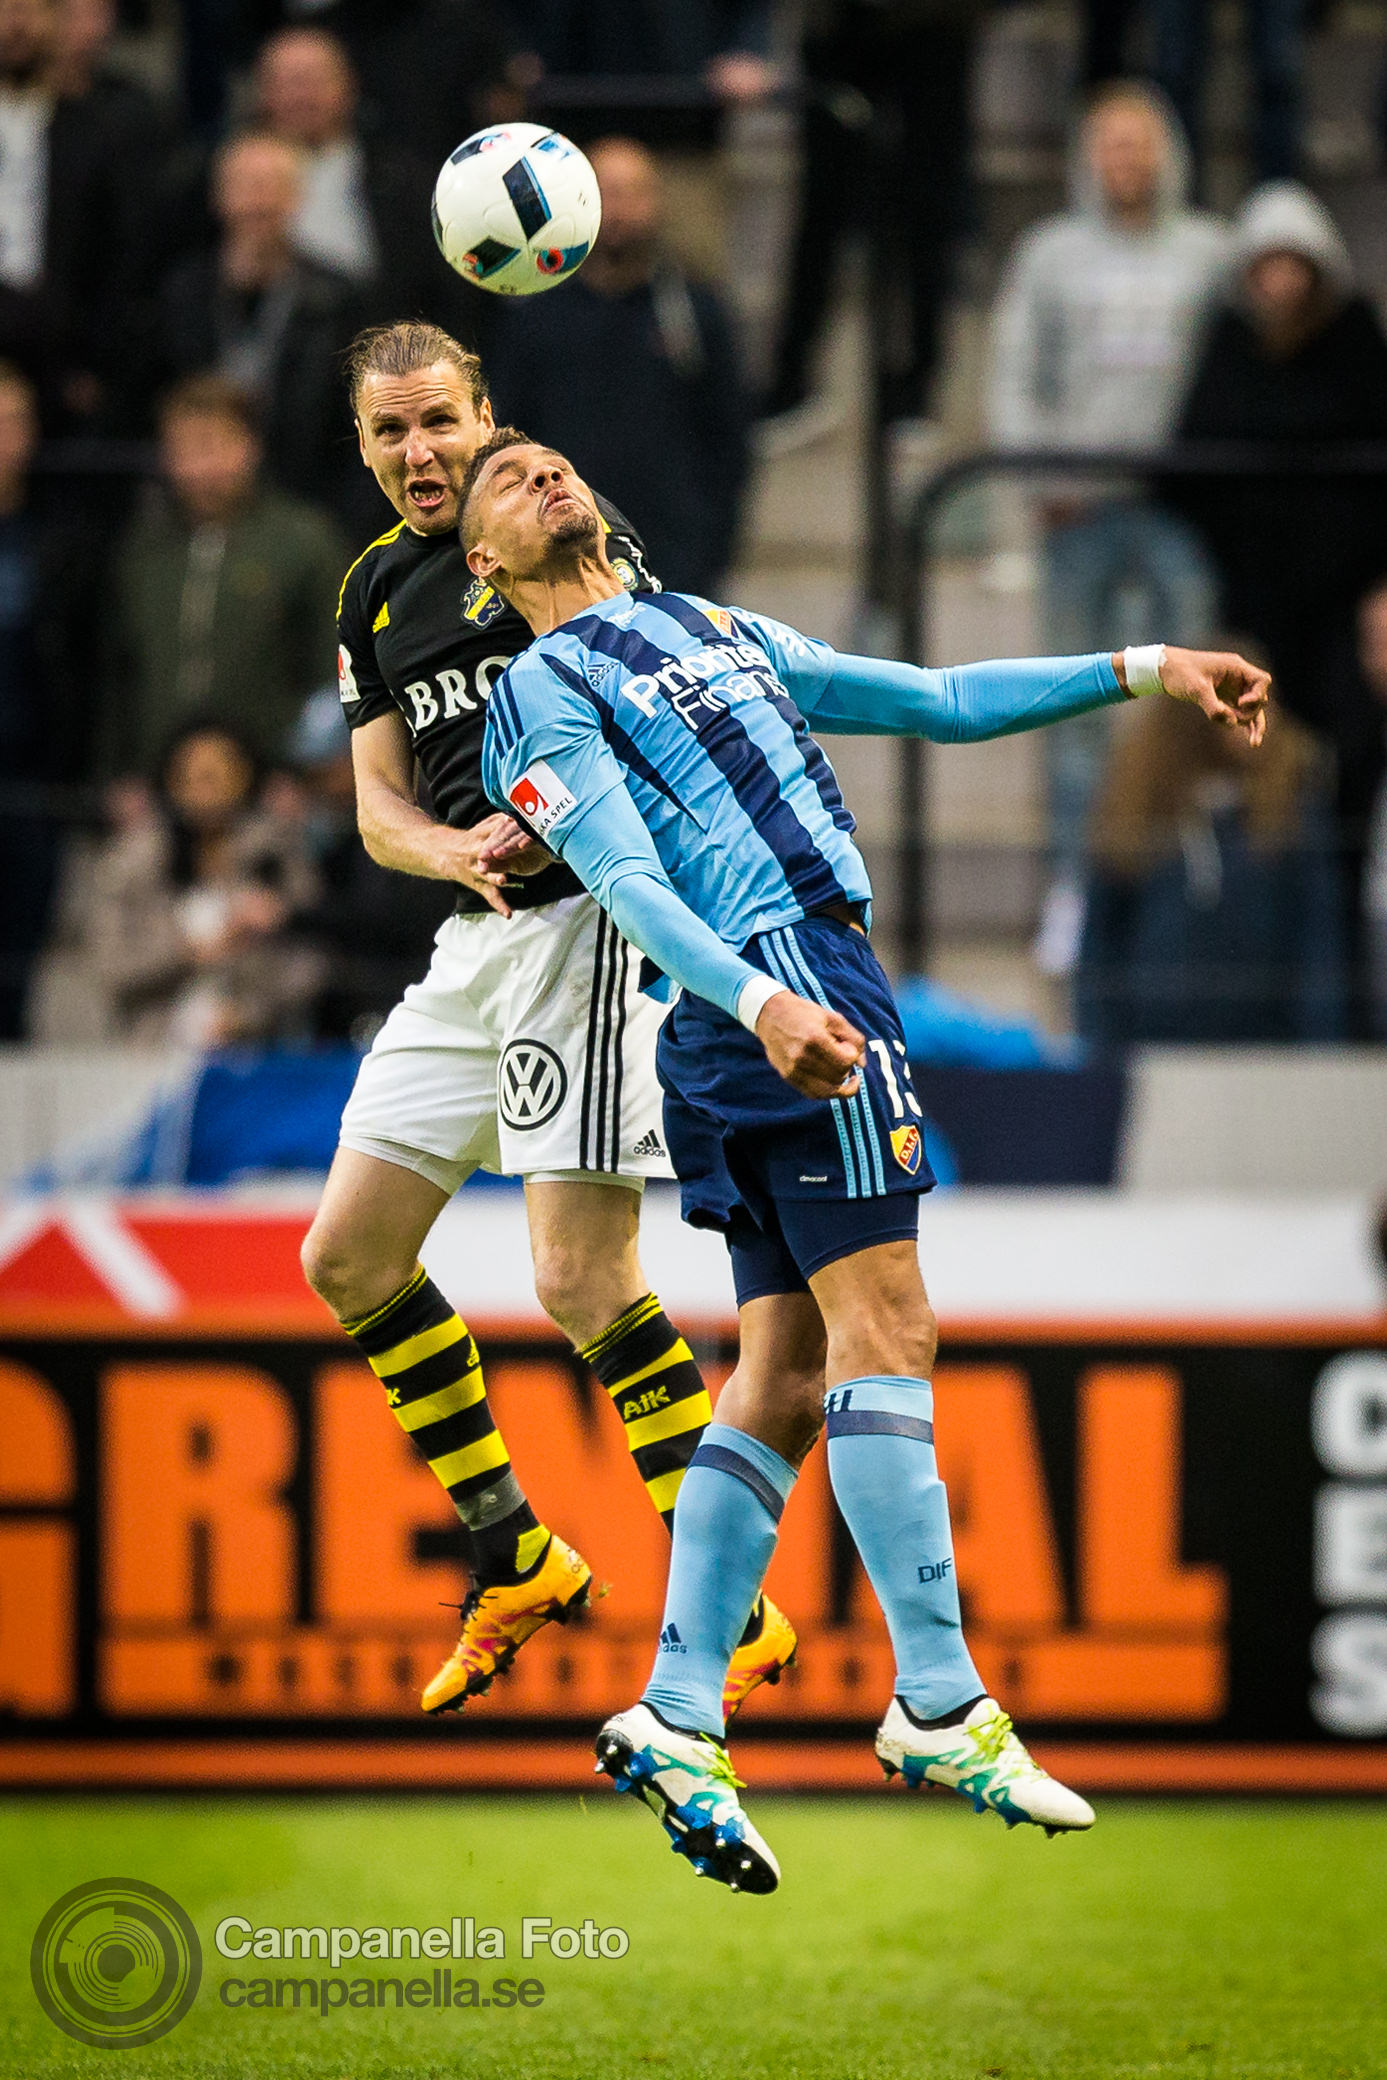 AIK crushes Djurgården and claims the derby - Michael Campanella Photography